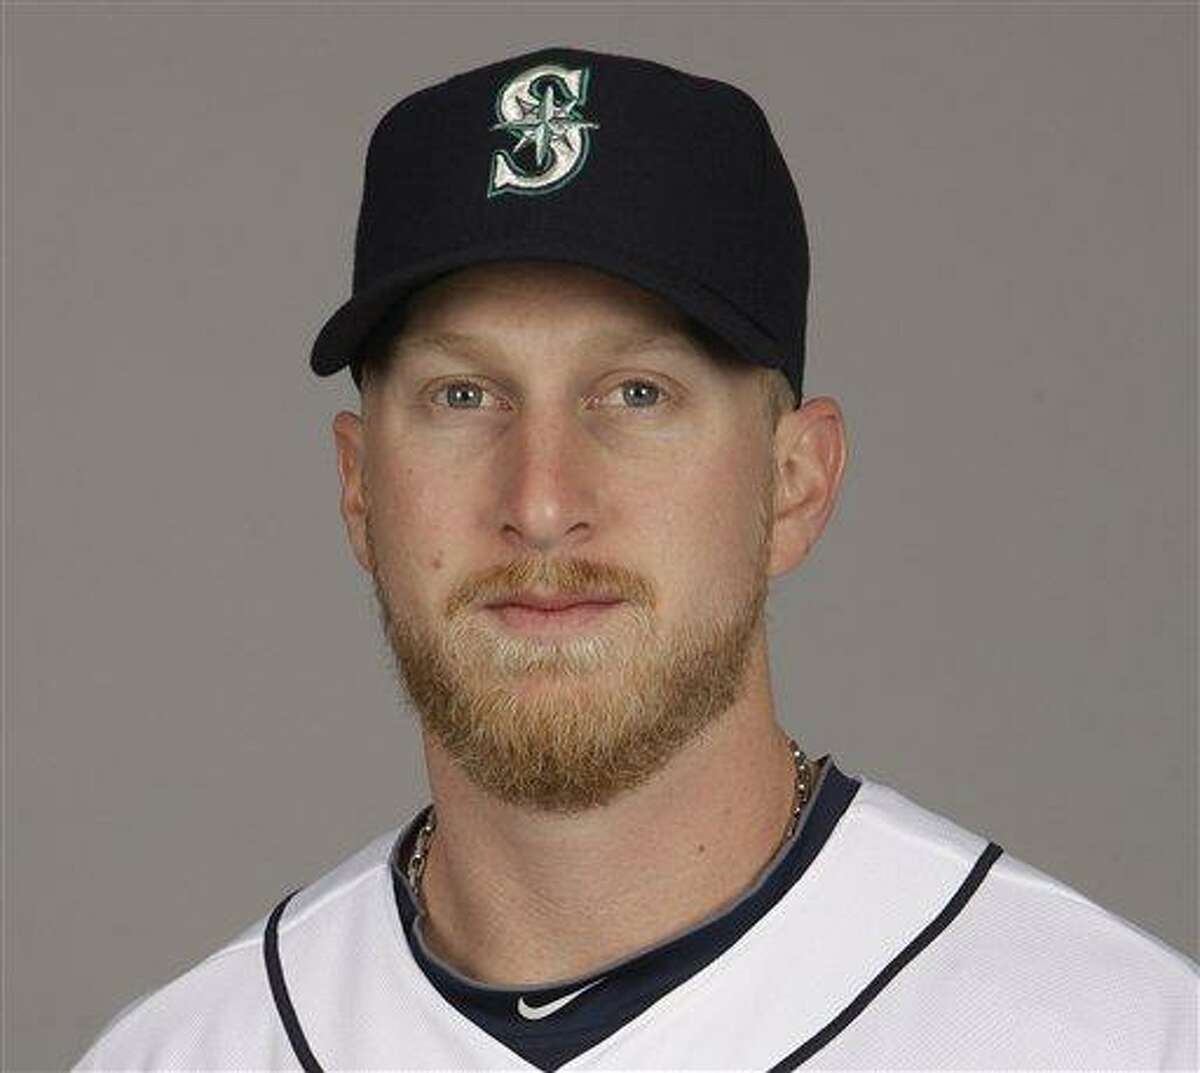 IFLE - In this 2012 file photo, Mike Carp of the Seattle Mariners baseball team poses in Peoria, Ariz. The Boston Red Sox have acquired Carp from the Mariners for a player to be named later or cash. Seattle designated the 26-year-old Carp for assignment earlier this month, and the Red Sox were able to work out a deal for him. Carp can play both first base and left field. Boston and Seattle announced the move Wednesday, Feb. 20, 2013. (AP Photo/Charlie Riedel, File)